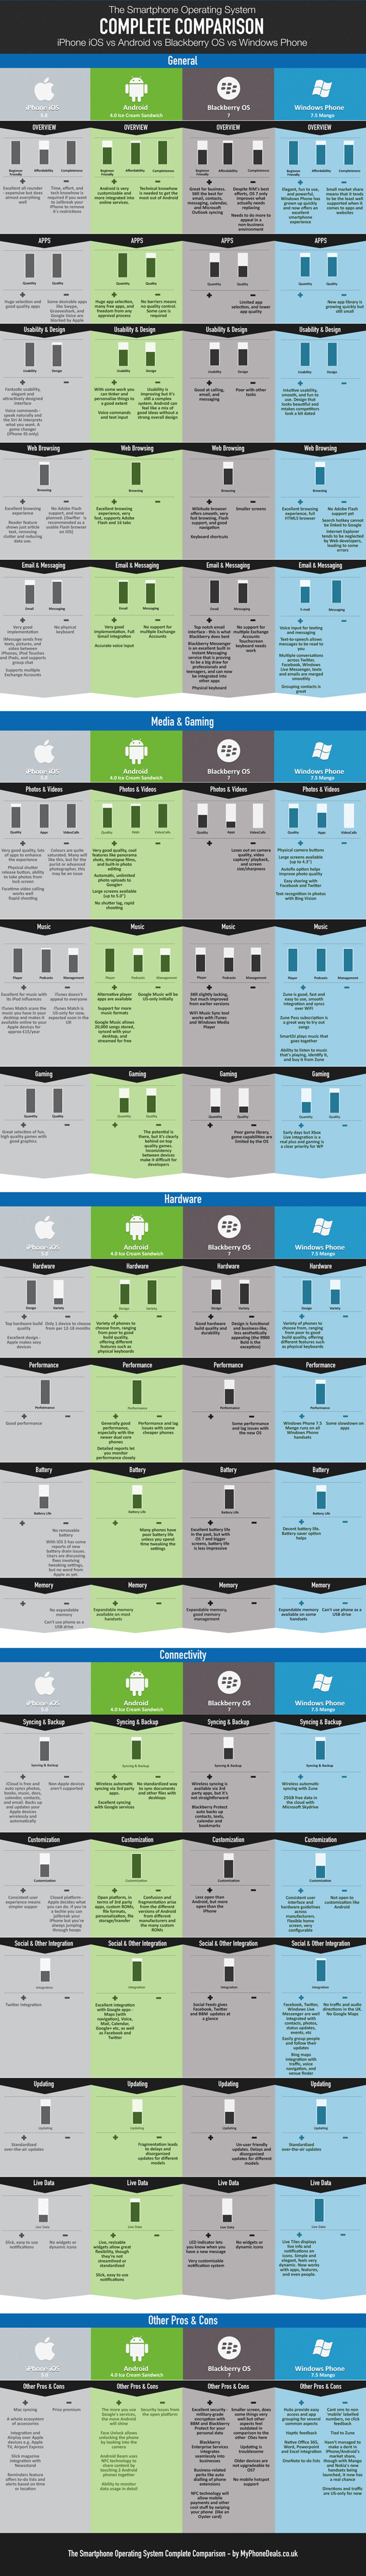 Apple iOS, Windows Phone 7.5 Mango and Android 4.0 compared